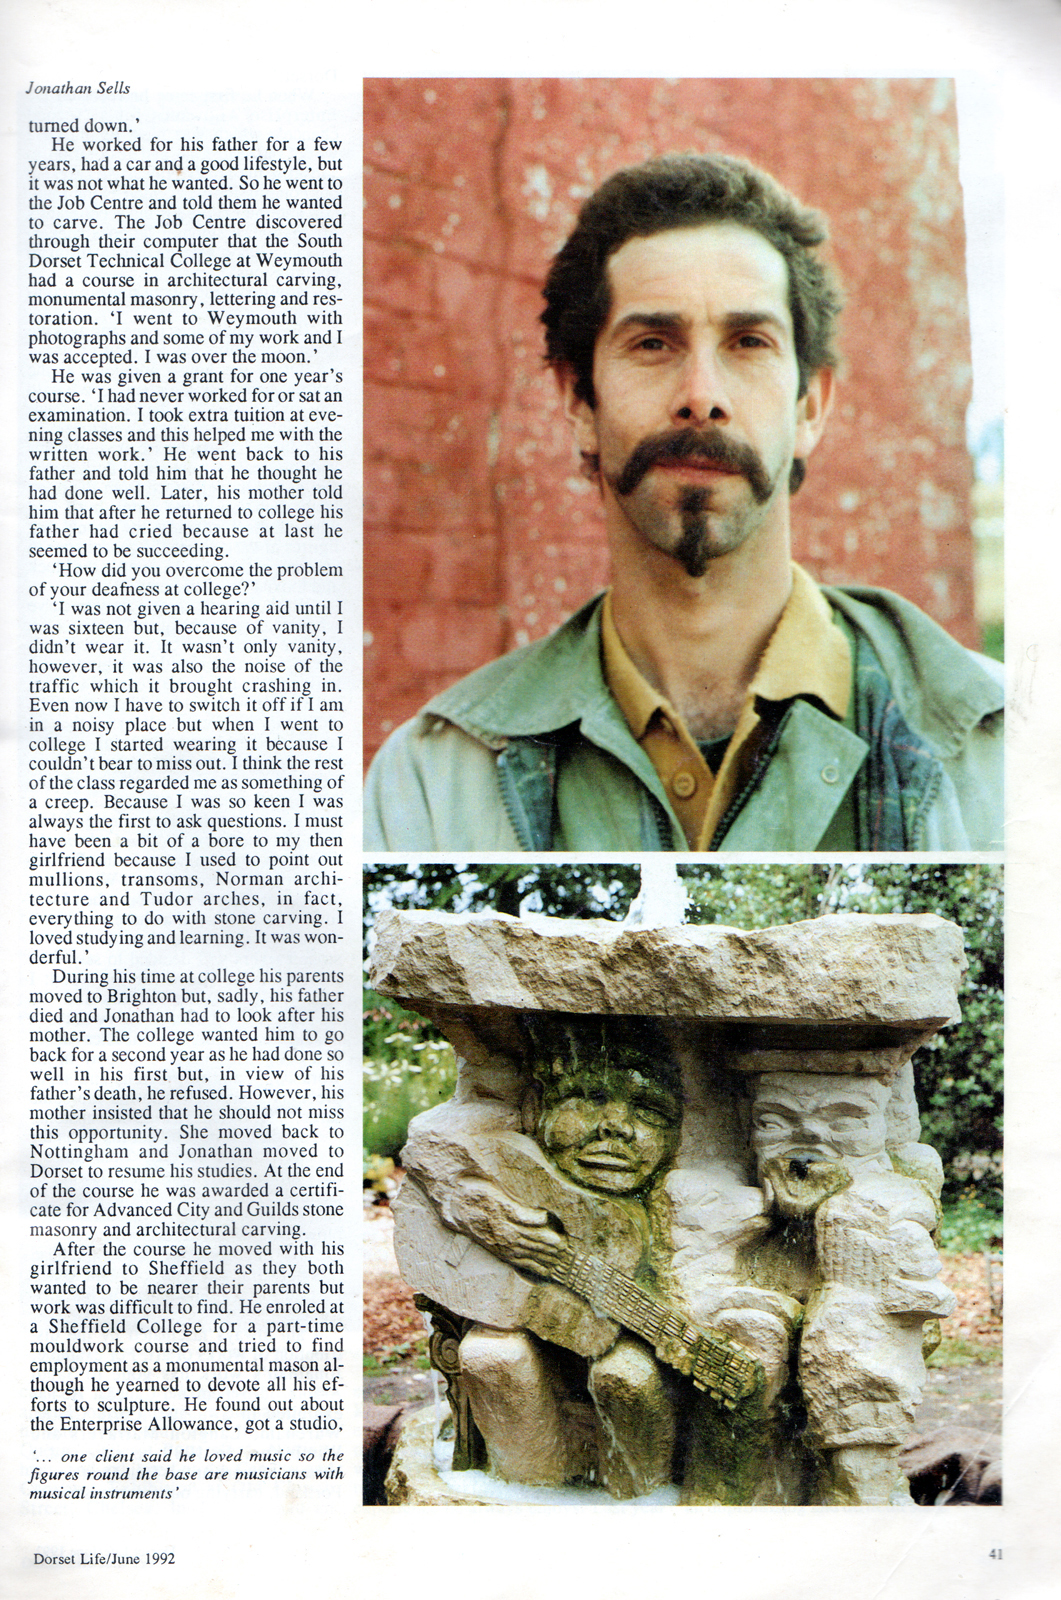 Jonathan Sells in Dorset Life, June 1992